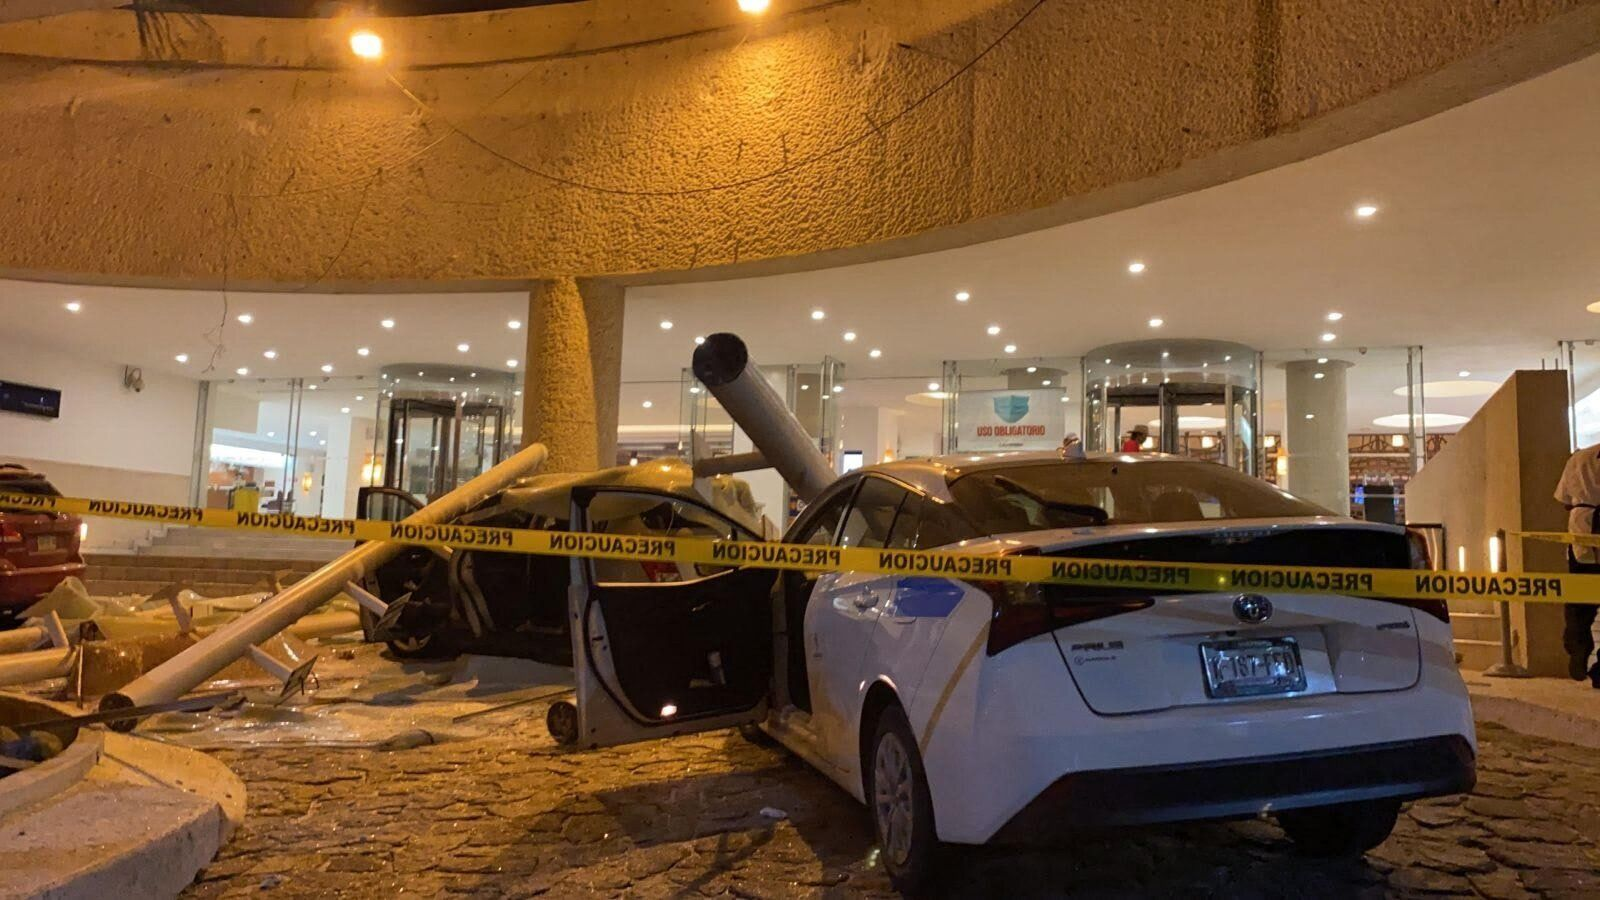 Cars outside a hotel in Acapulco, Mexico were damaged when the earthquake struck on Tuesday.